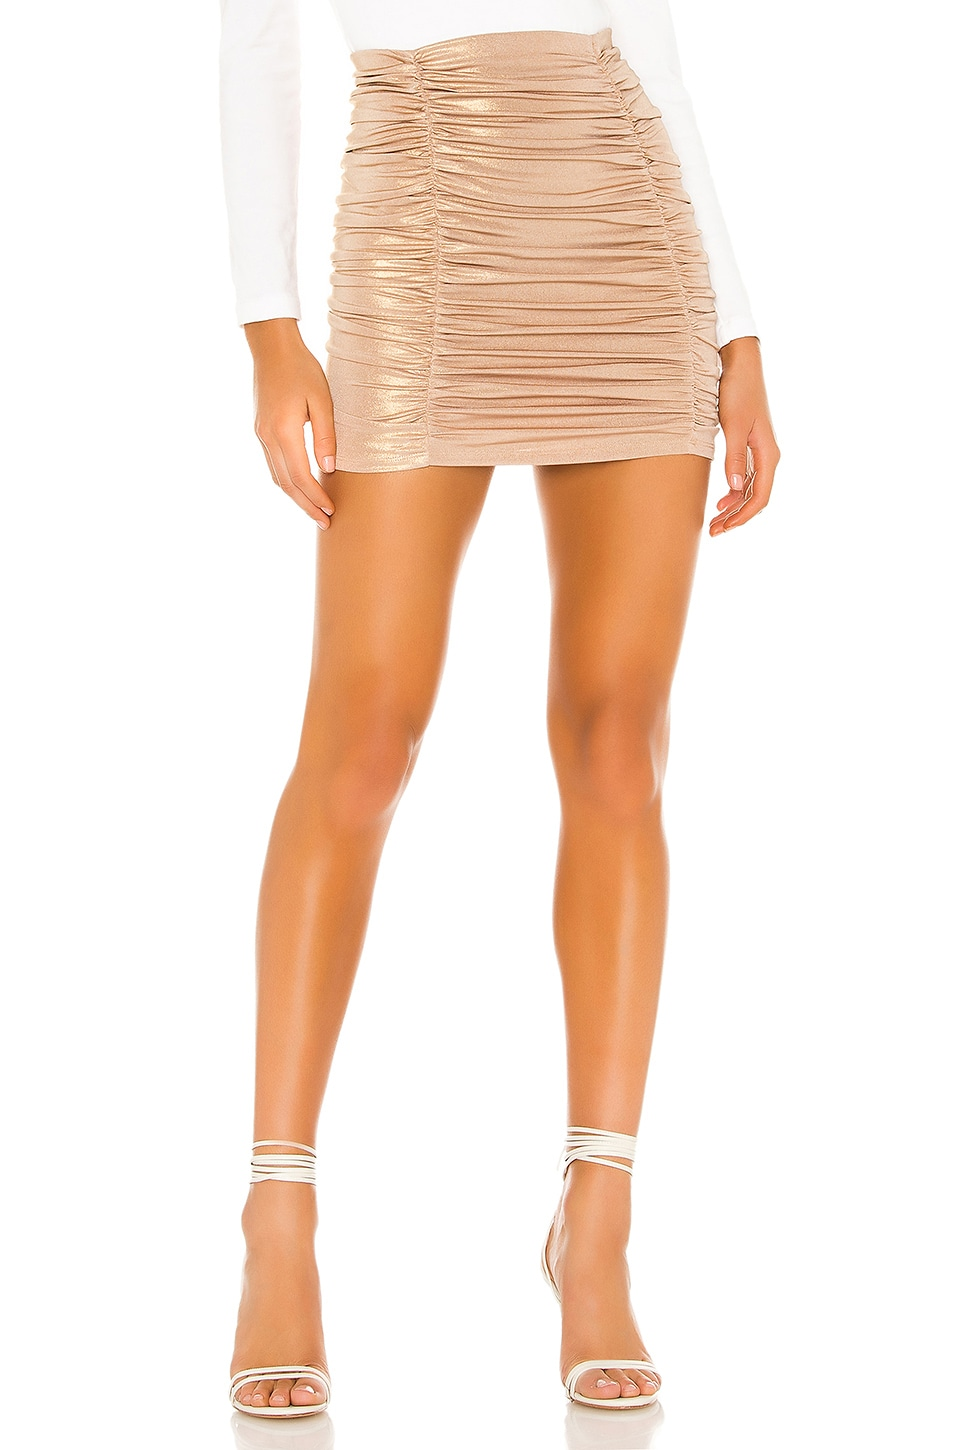 Lovers + Friends Sylvia Skirt in Tan Metallic